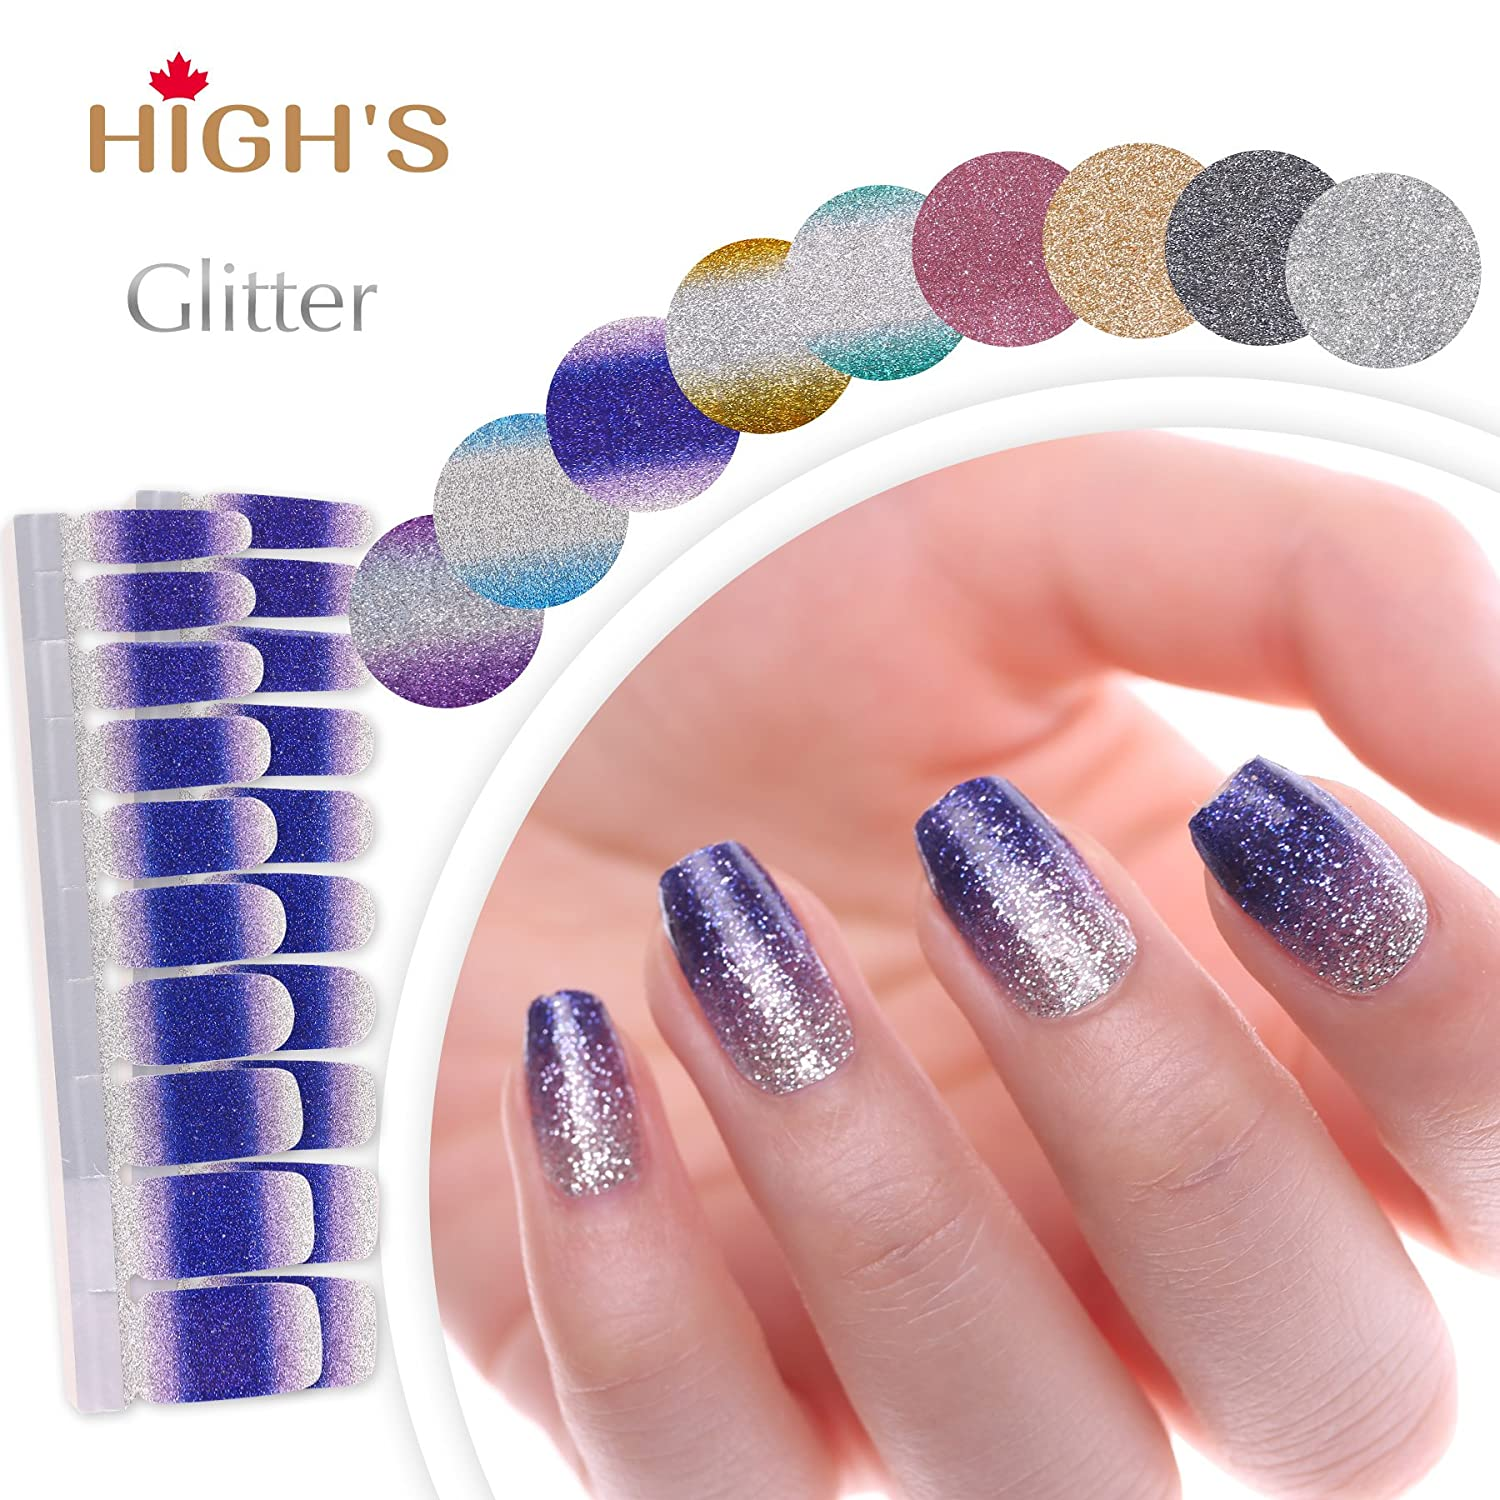 HIGH'S Glitter Series The Cocktail Collection Manicure Nail Polish Strips Nail Wraps, Hawaii HIGH' S